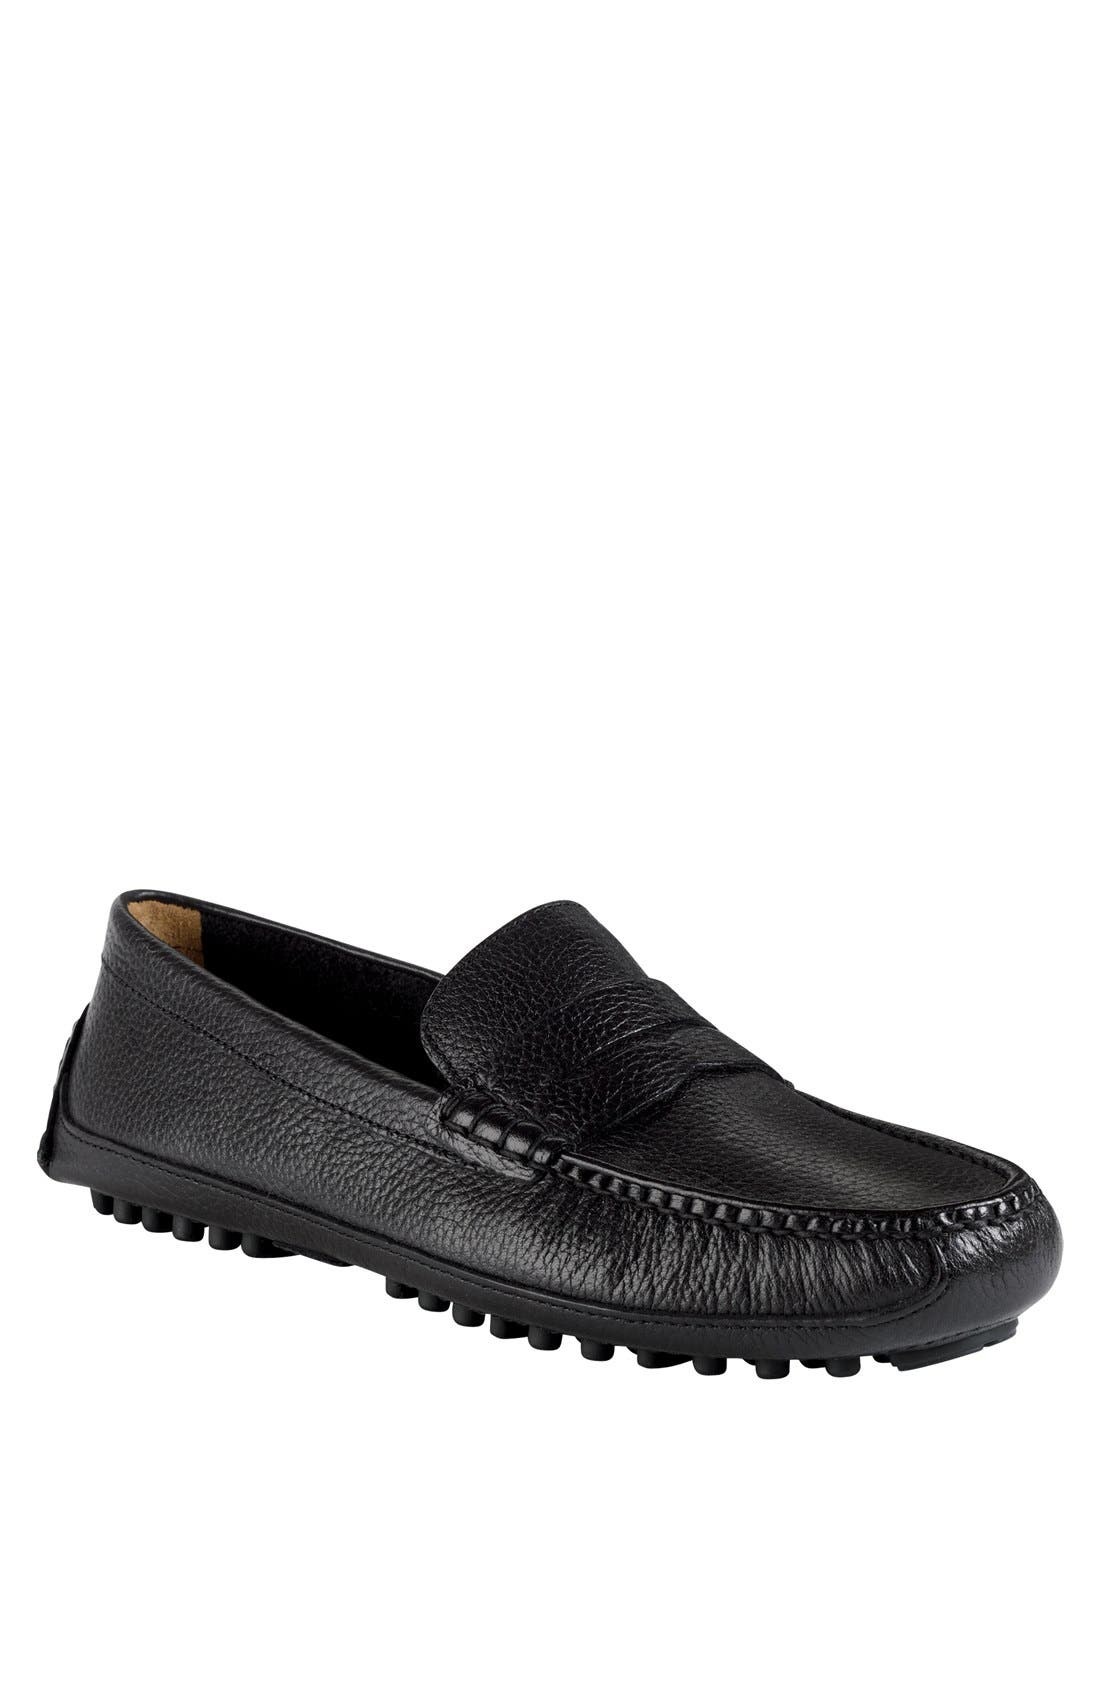 COLE HAAN, 'Grant Canoe' Penny Loafer, Main thumbnail 1, color, 001